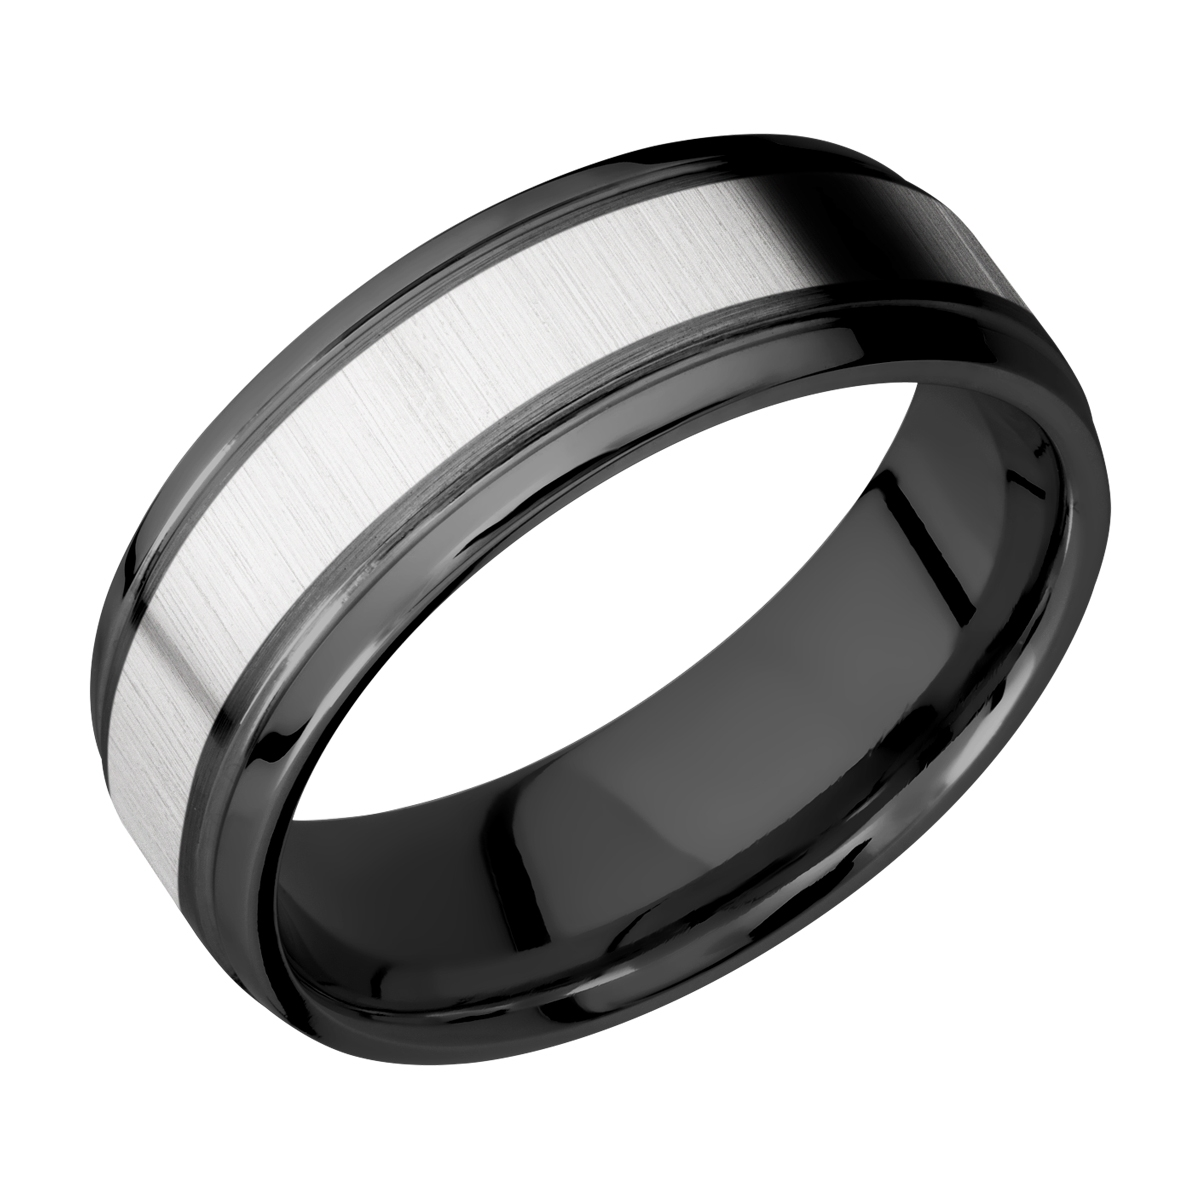 Lashbrook ZPF7B14(S)/COBALT Zirconium Wedding Ring or Band